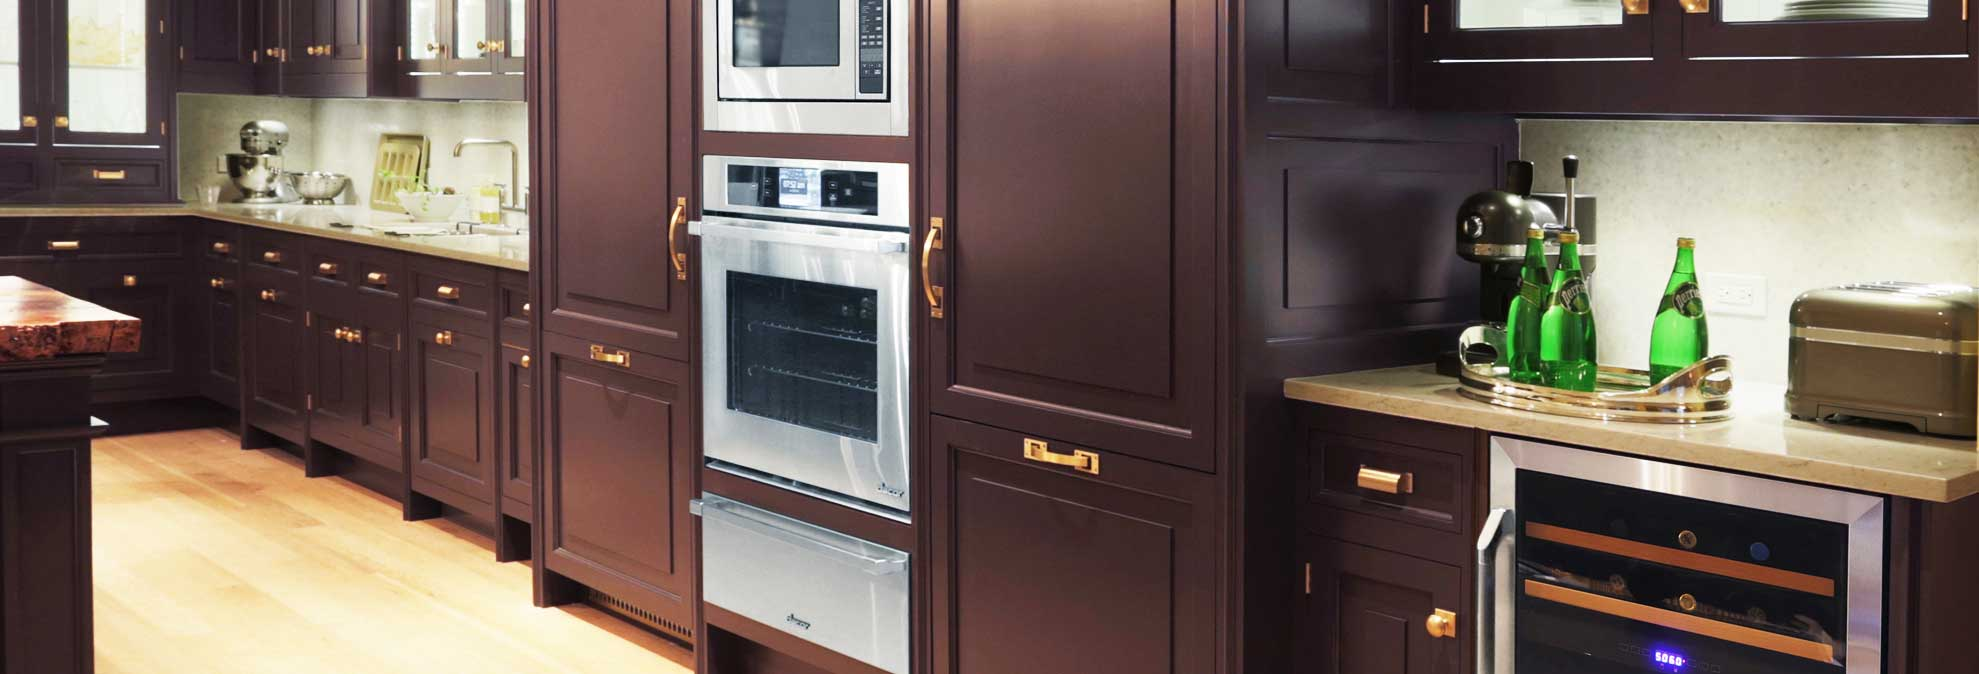 remodeling affordable cabinet planet chicago from cabinets choose kitchen